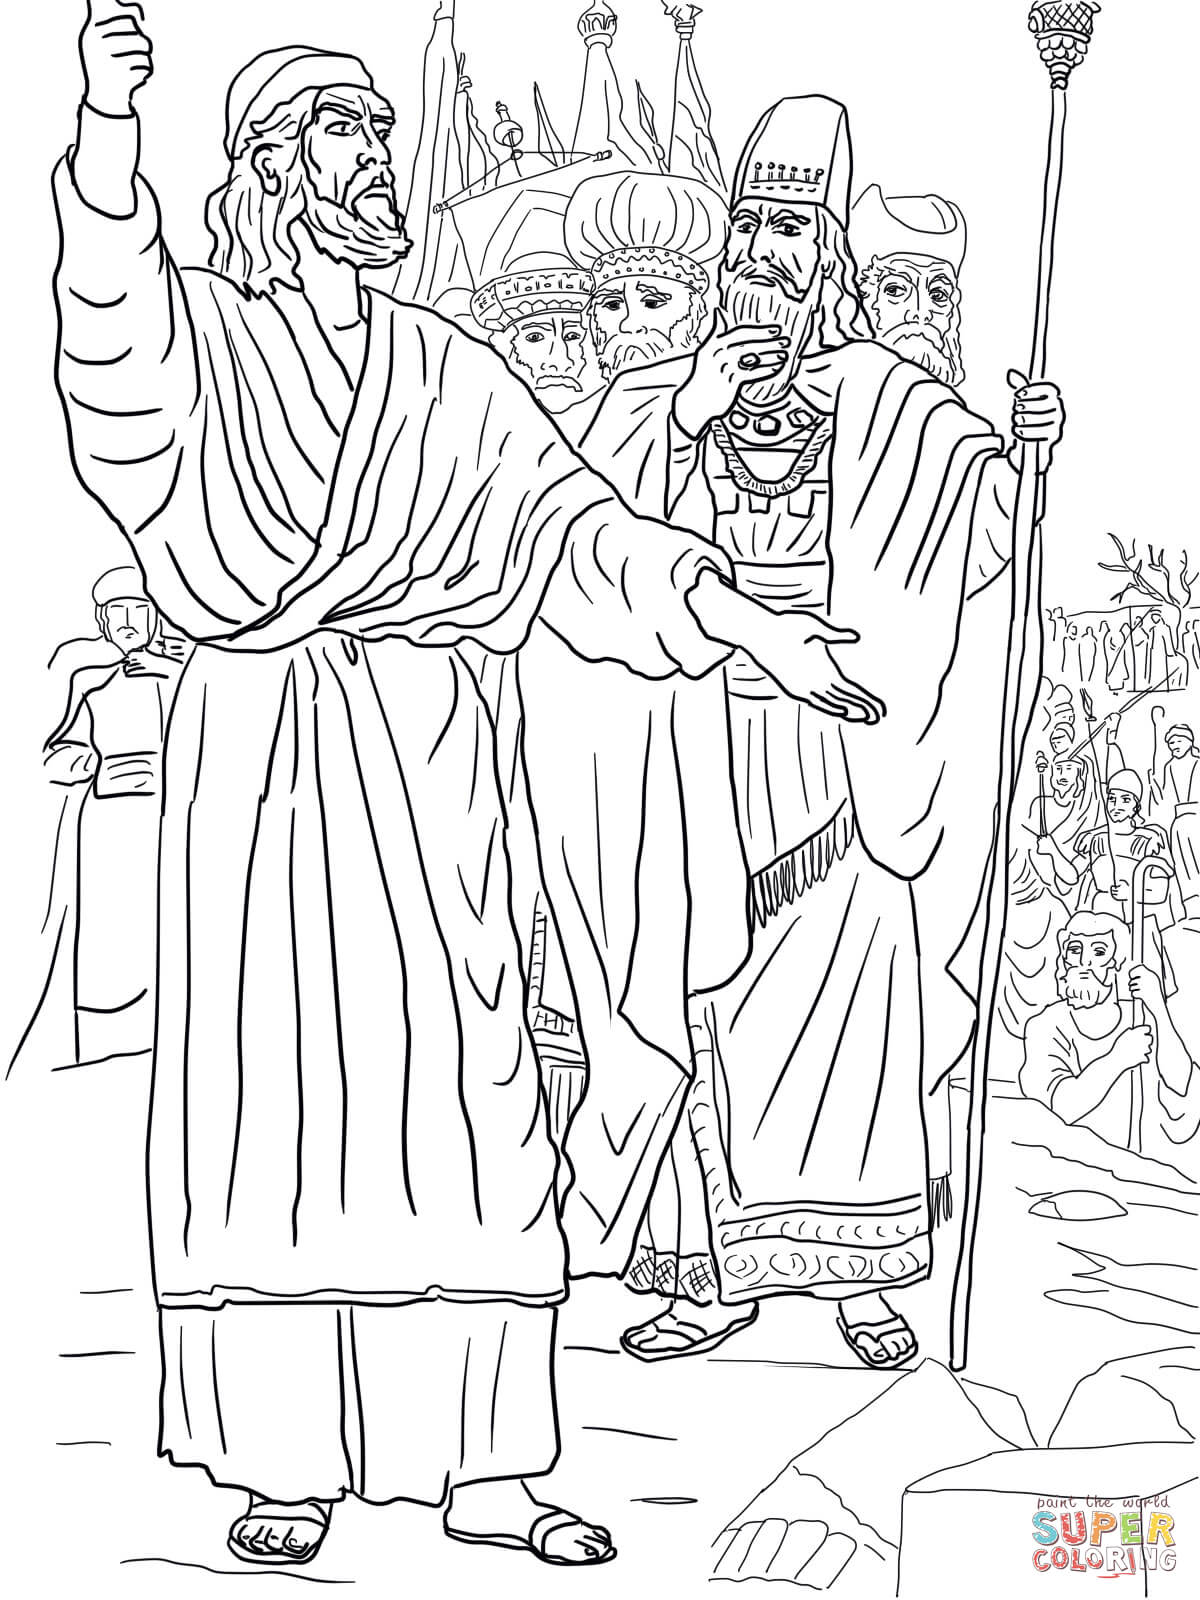 Elijah Ahab And Prophets Of Baal On Mount Carmel Coloring Page